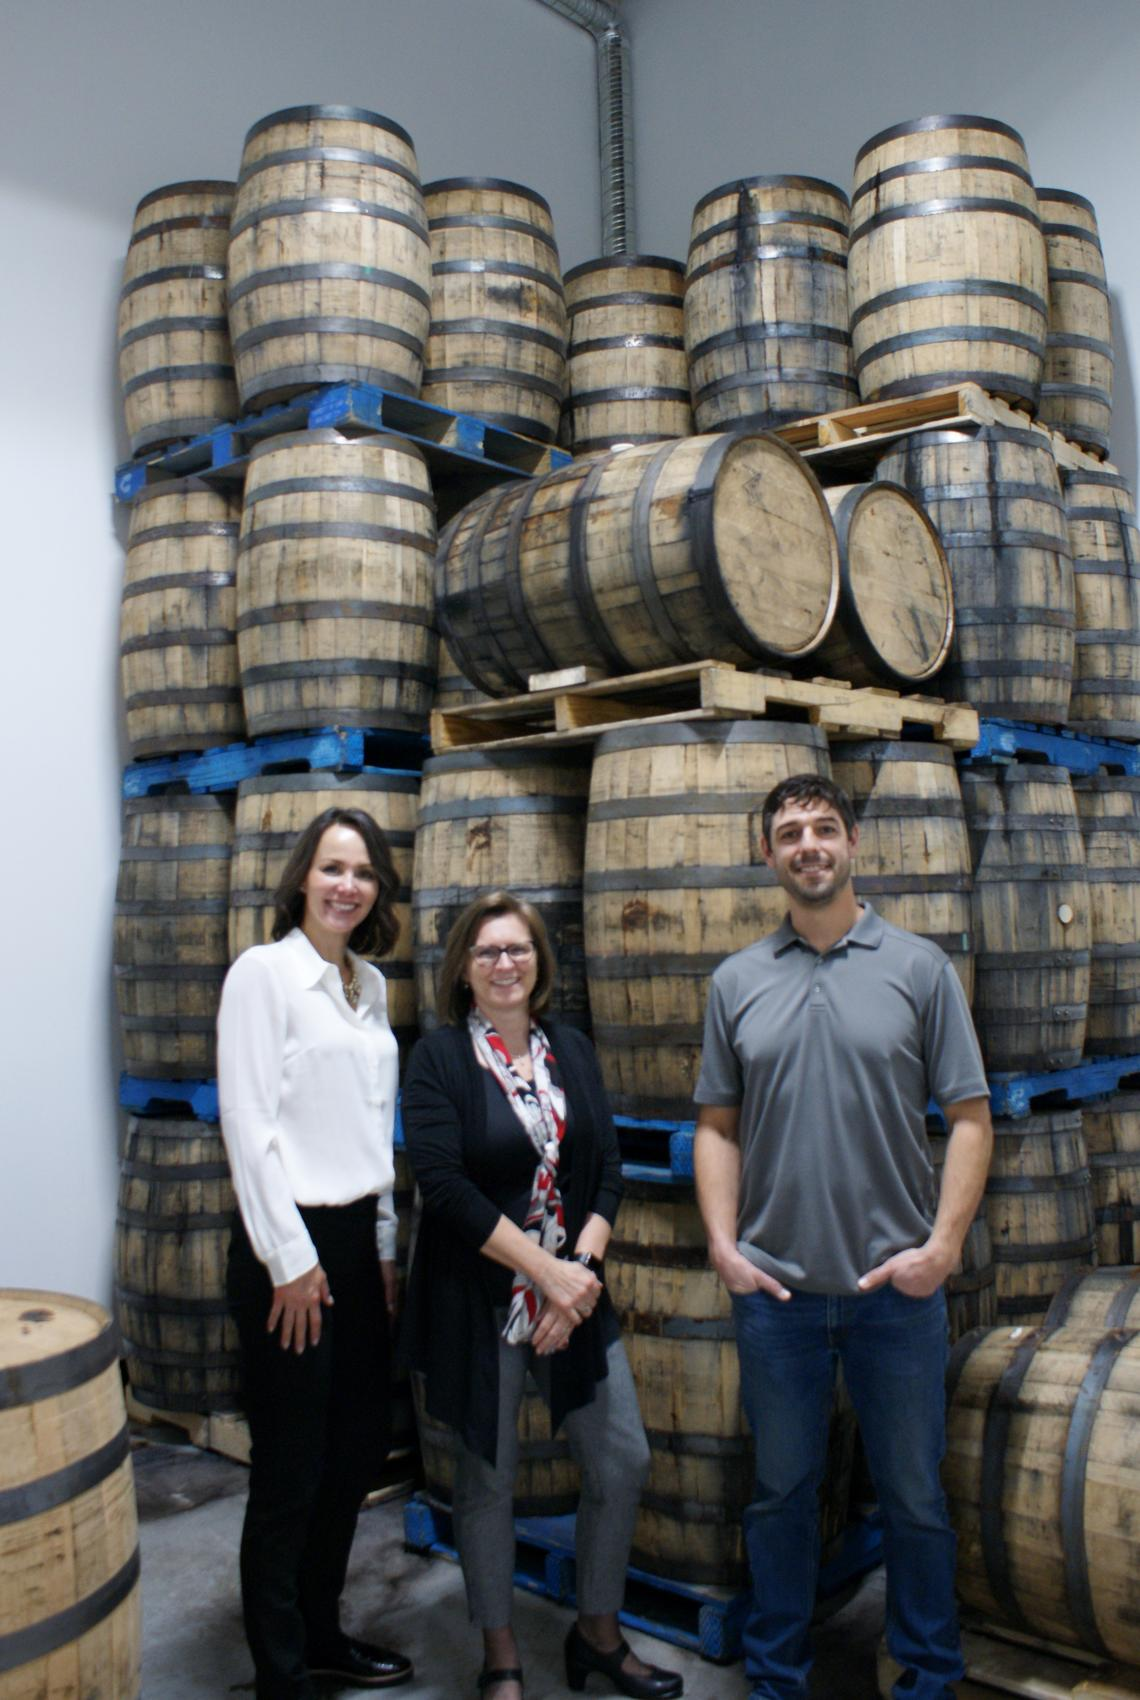 Leitha Cosentino, Director of Development, and Dr. Lesley Rigg, dean of the Faculty of Science, and Tomas Romero, pictured in front of casks at Romero Distilling.